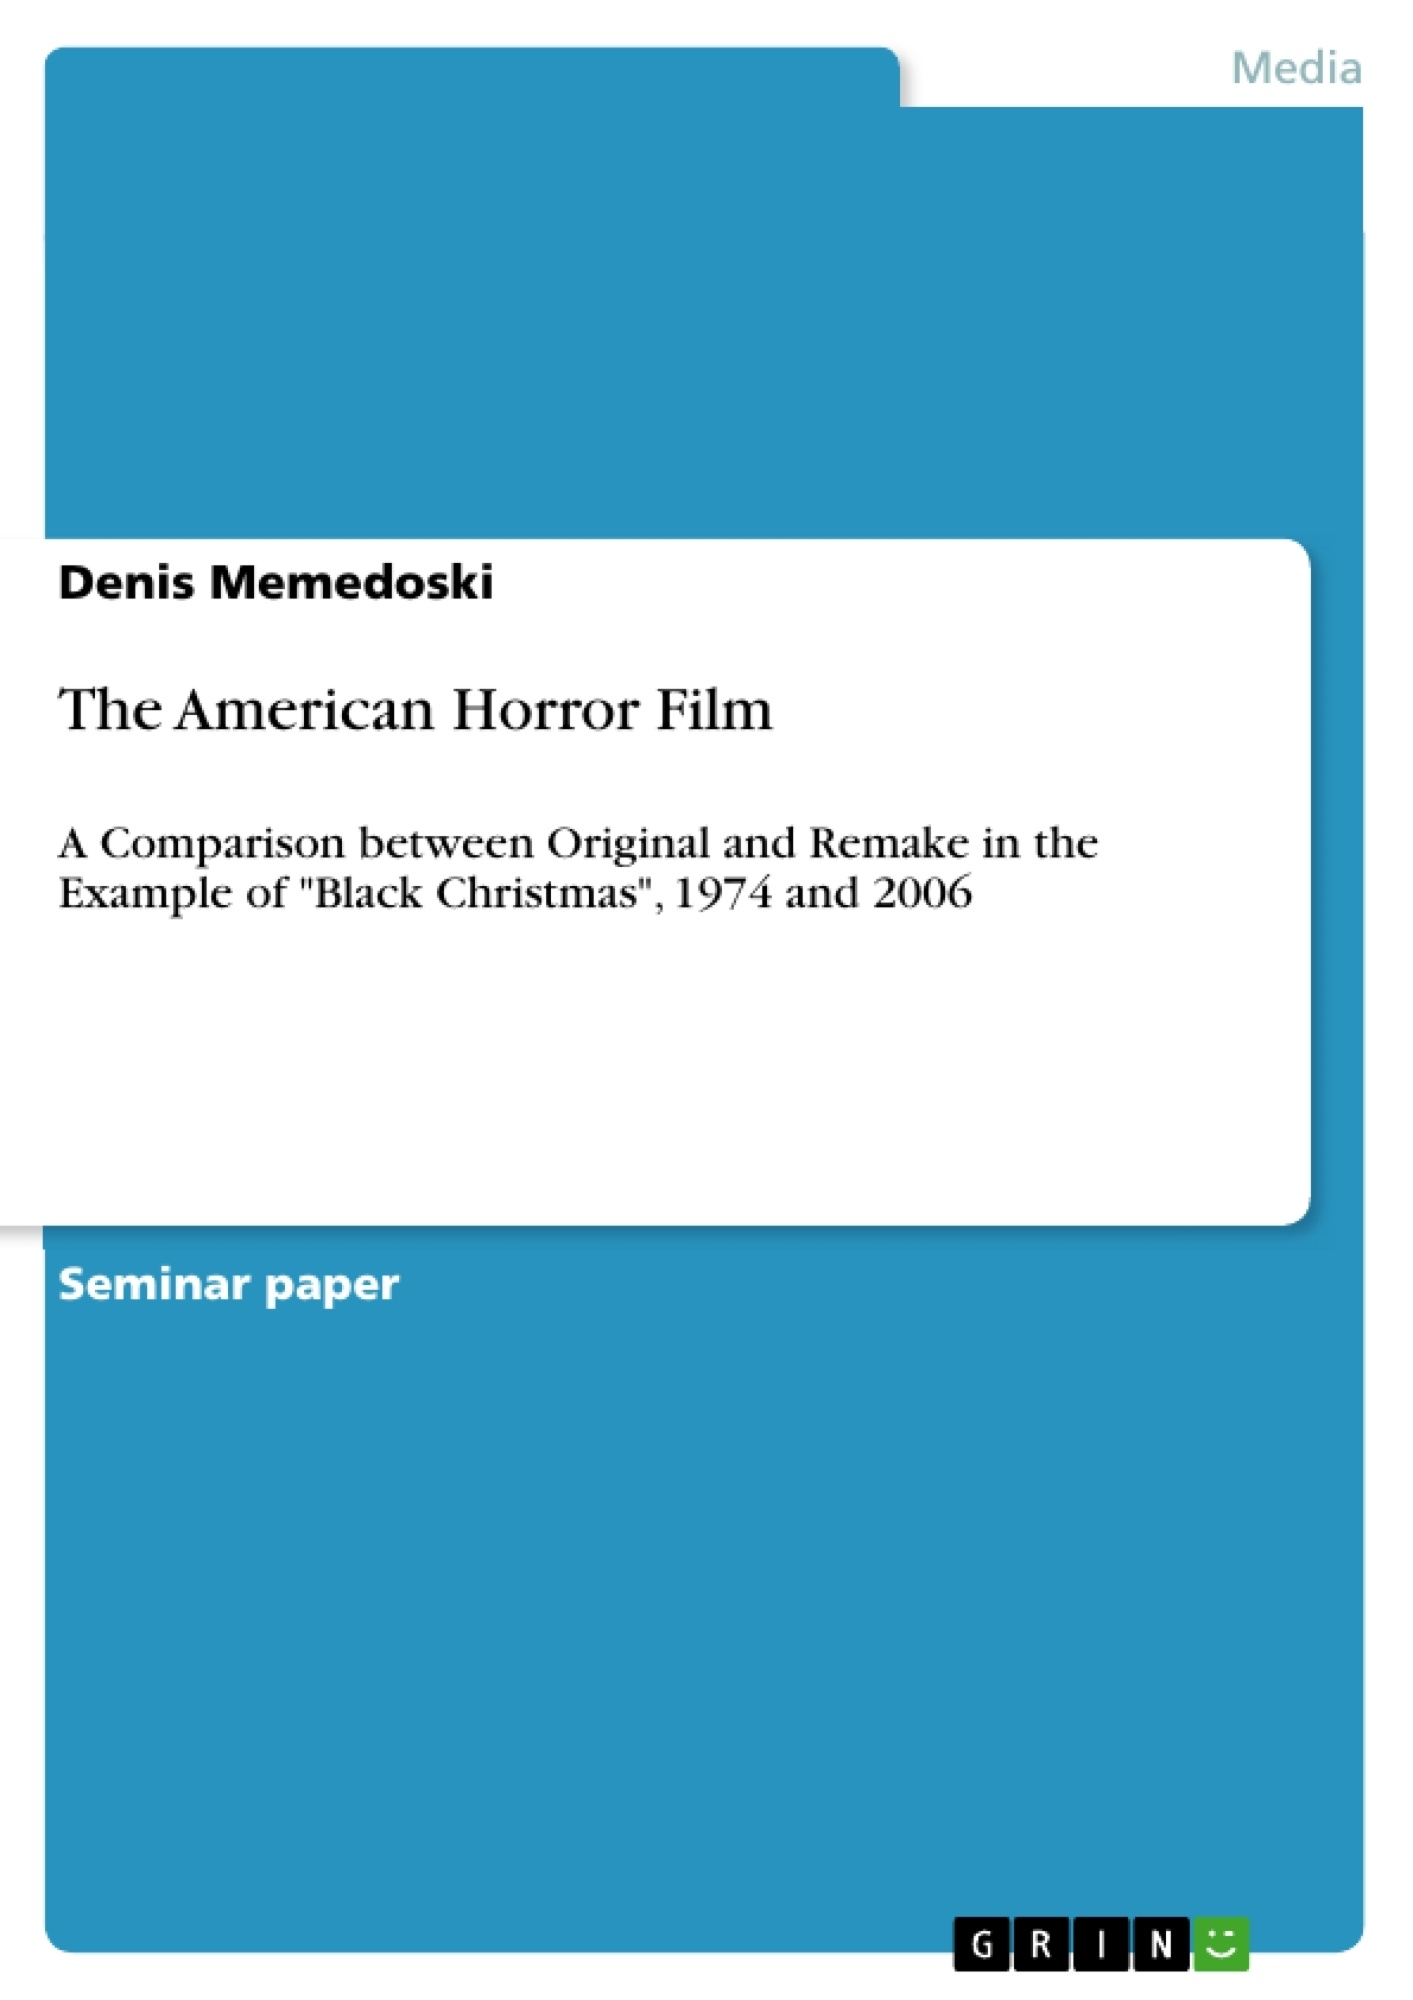 Title: The American Horror Film